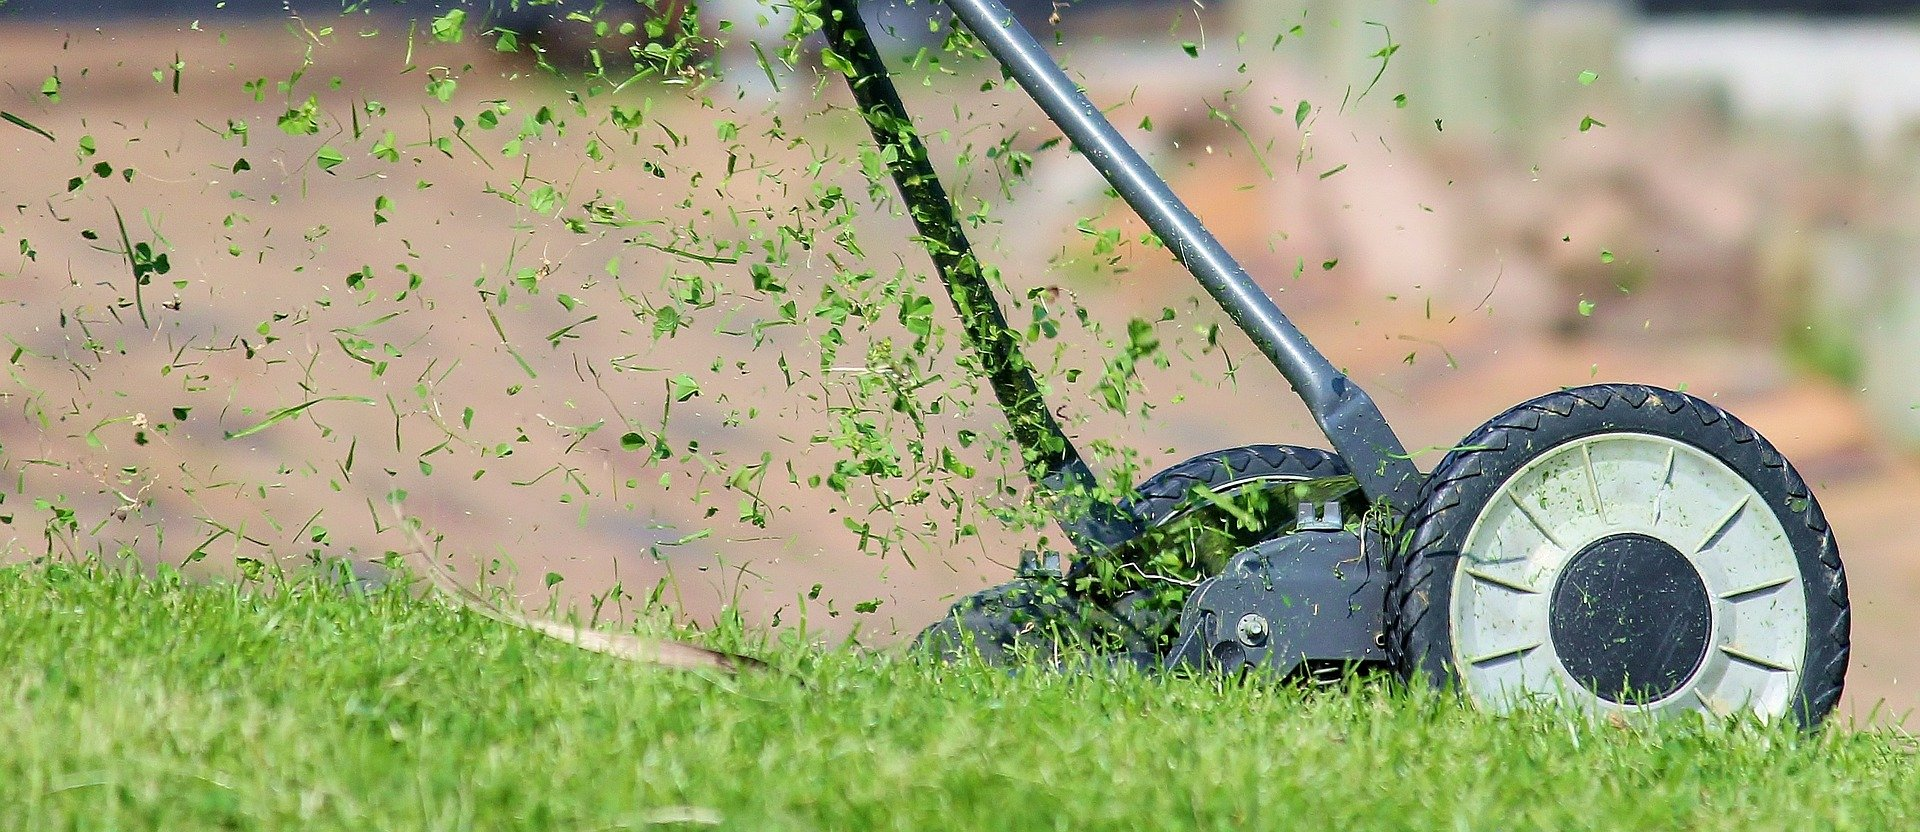 Lawn Maintenance for Spring